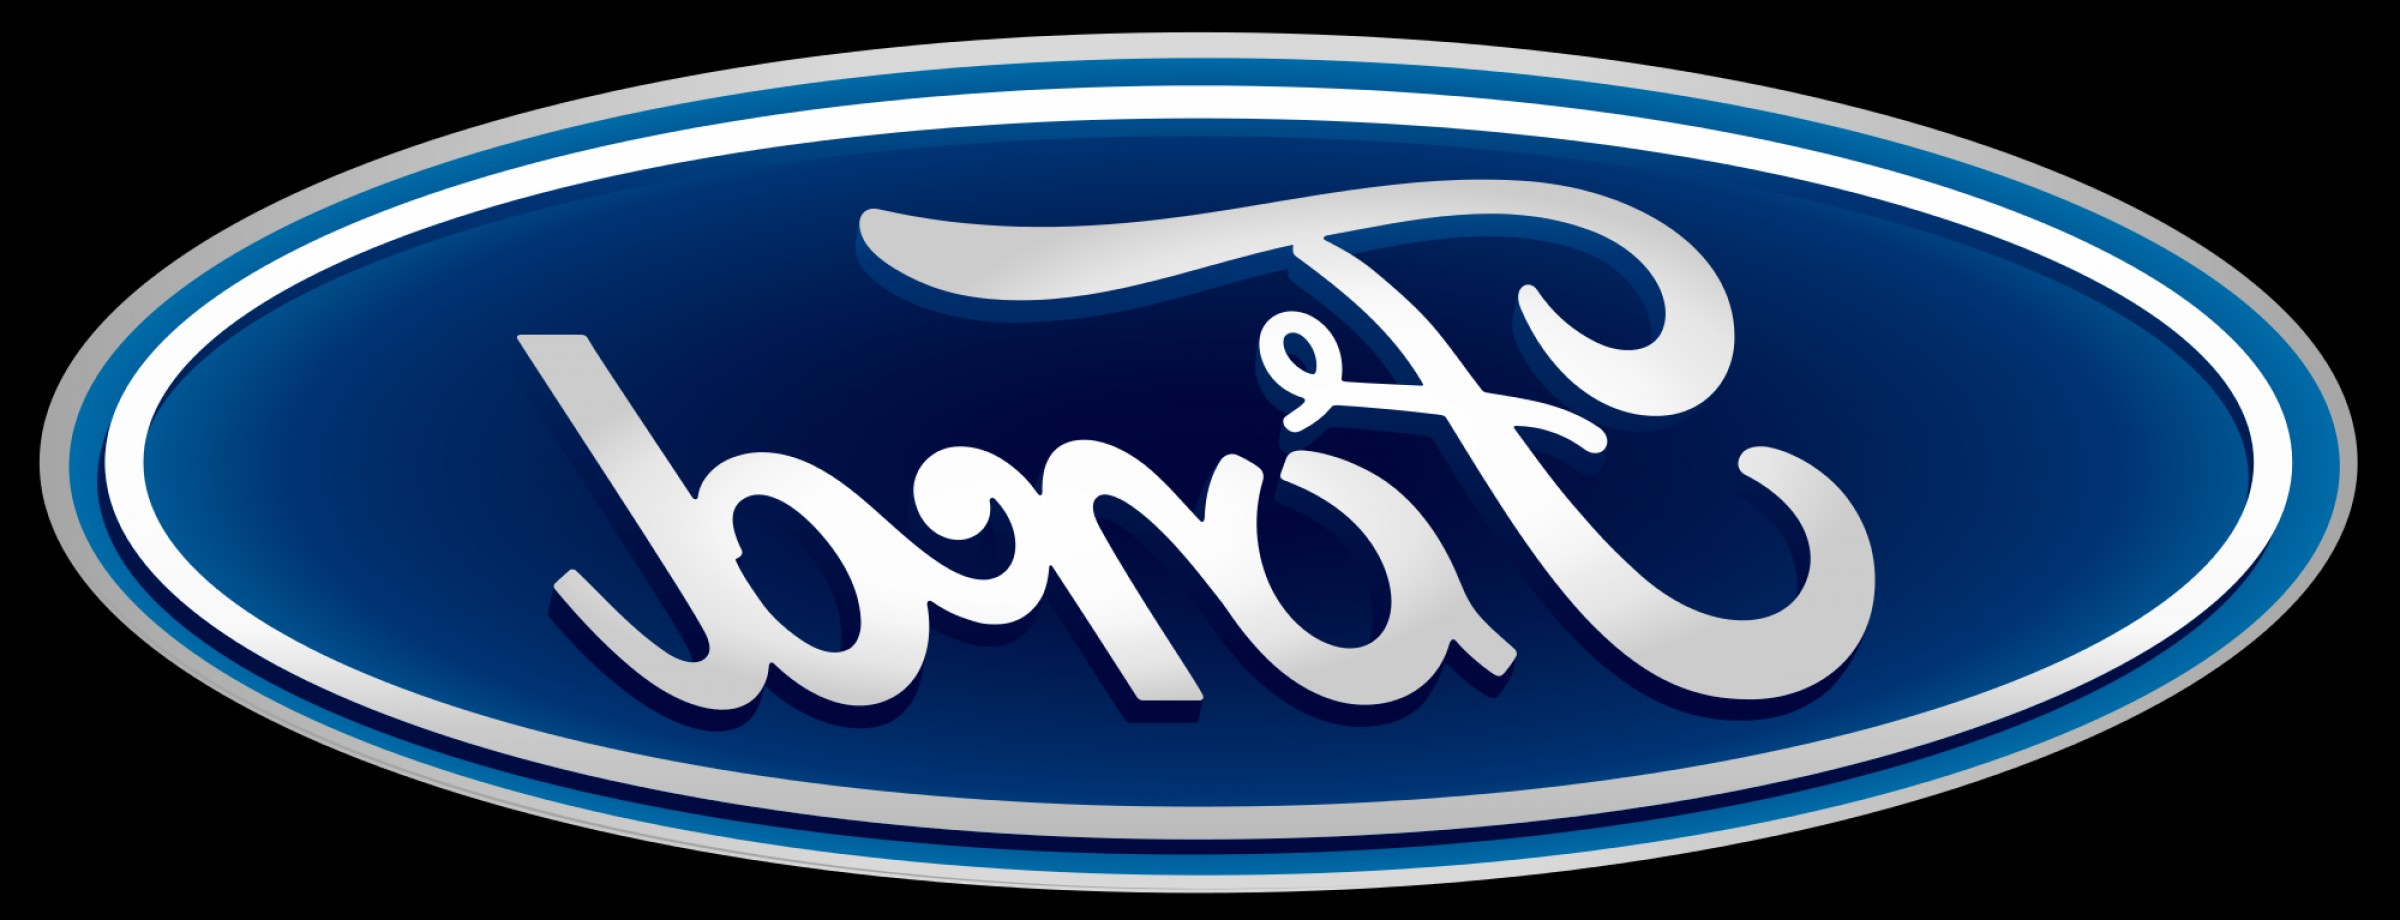 1903 Ford Motor Company Vector Art: Ford Logo Png Transparent Background Download